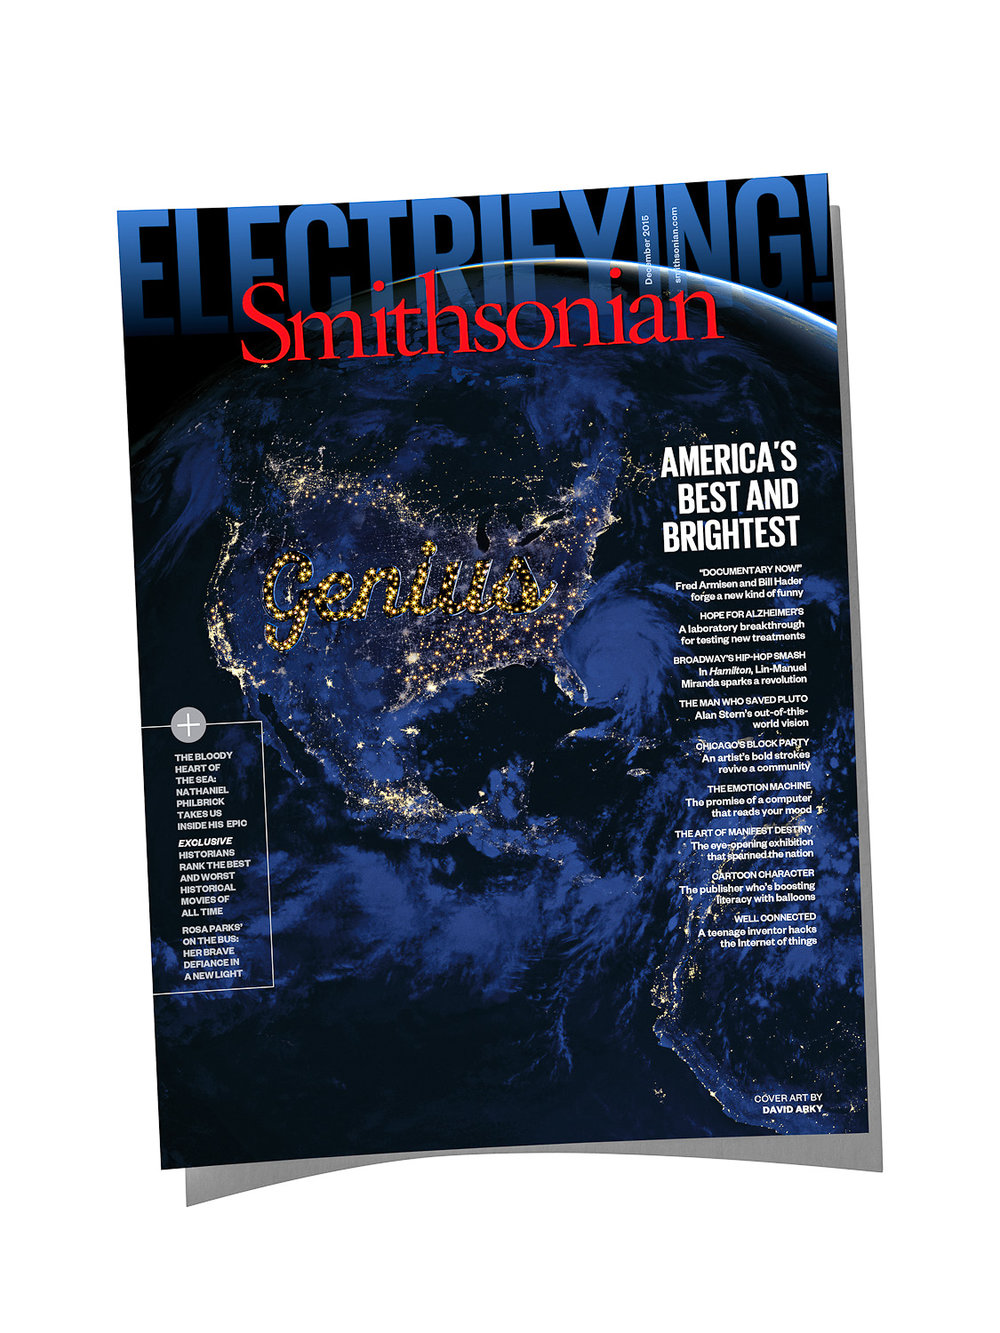 David_Arky_Smithsonian Genius Cover on Magazine.jpg